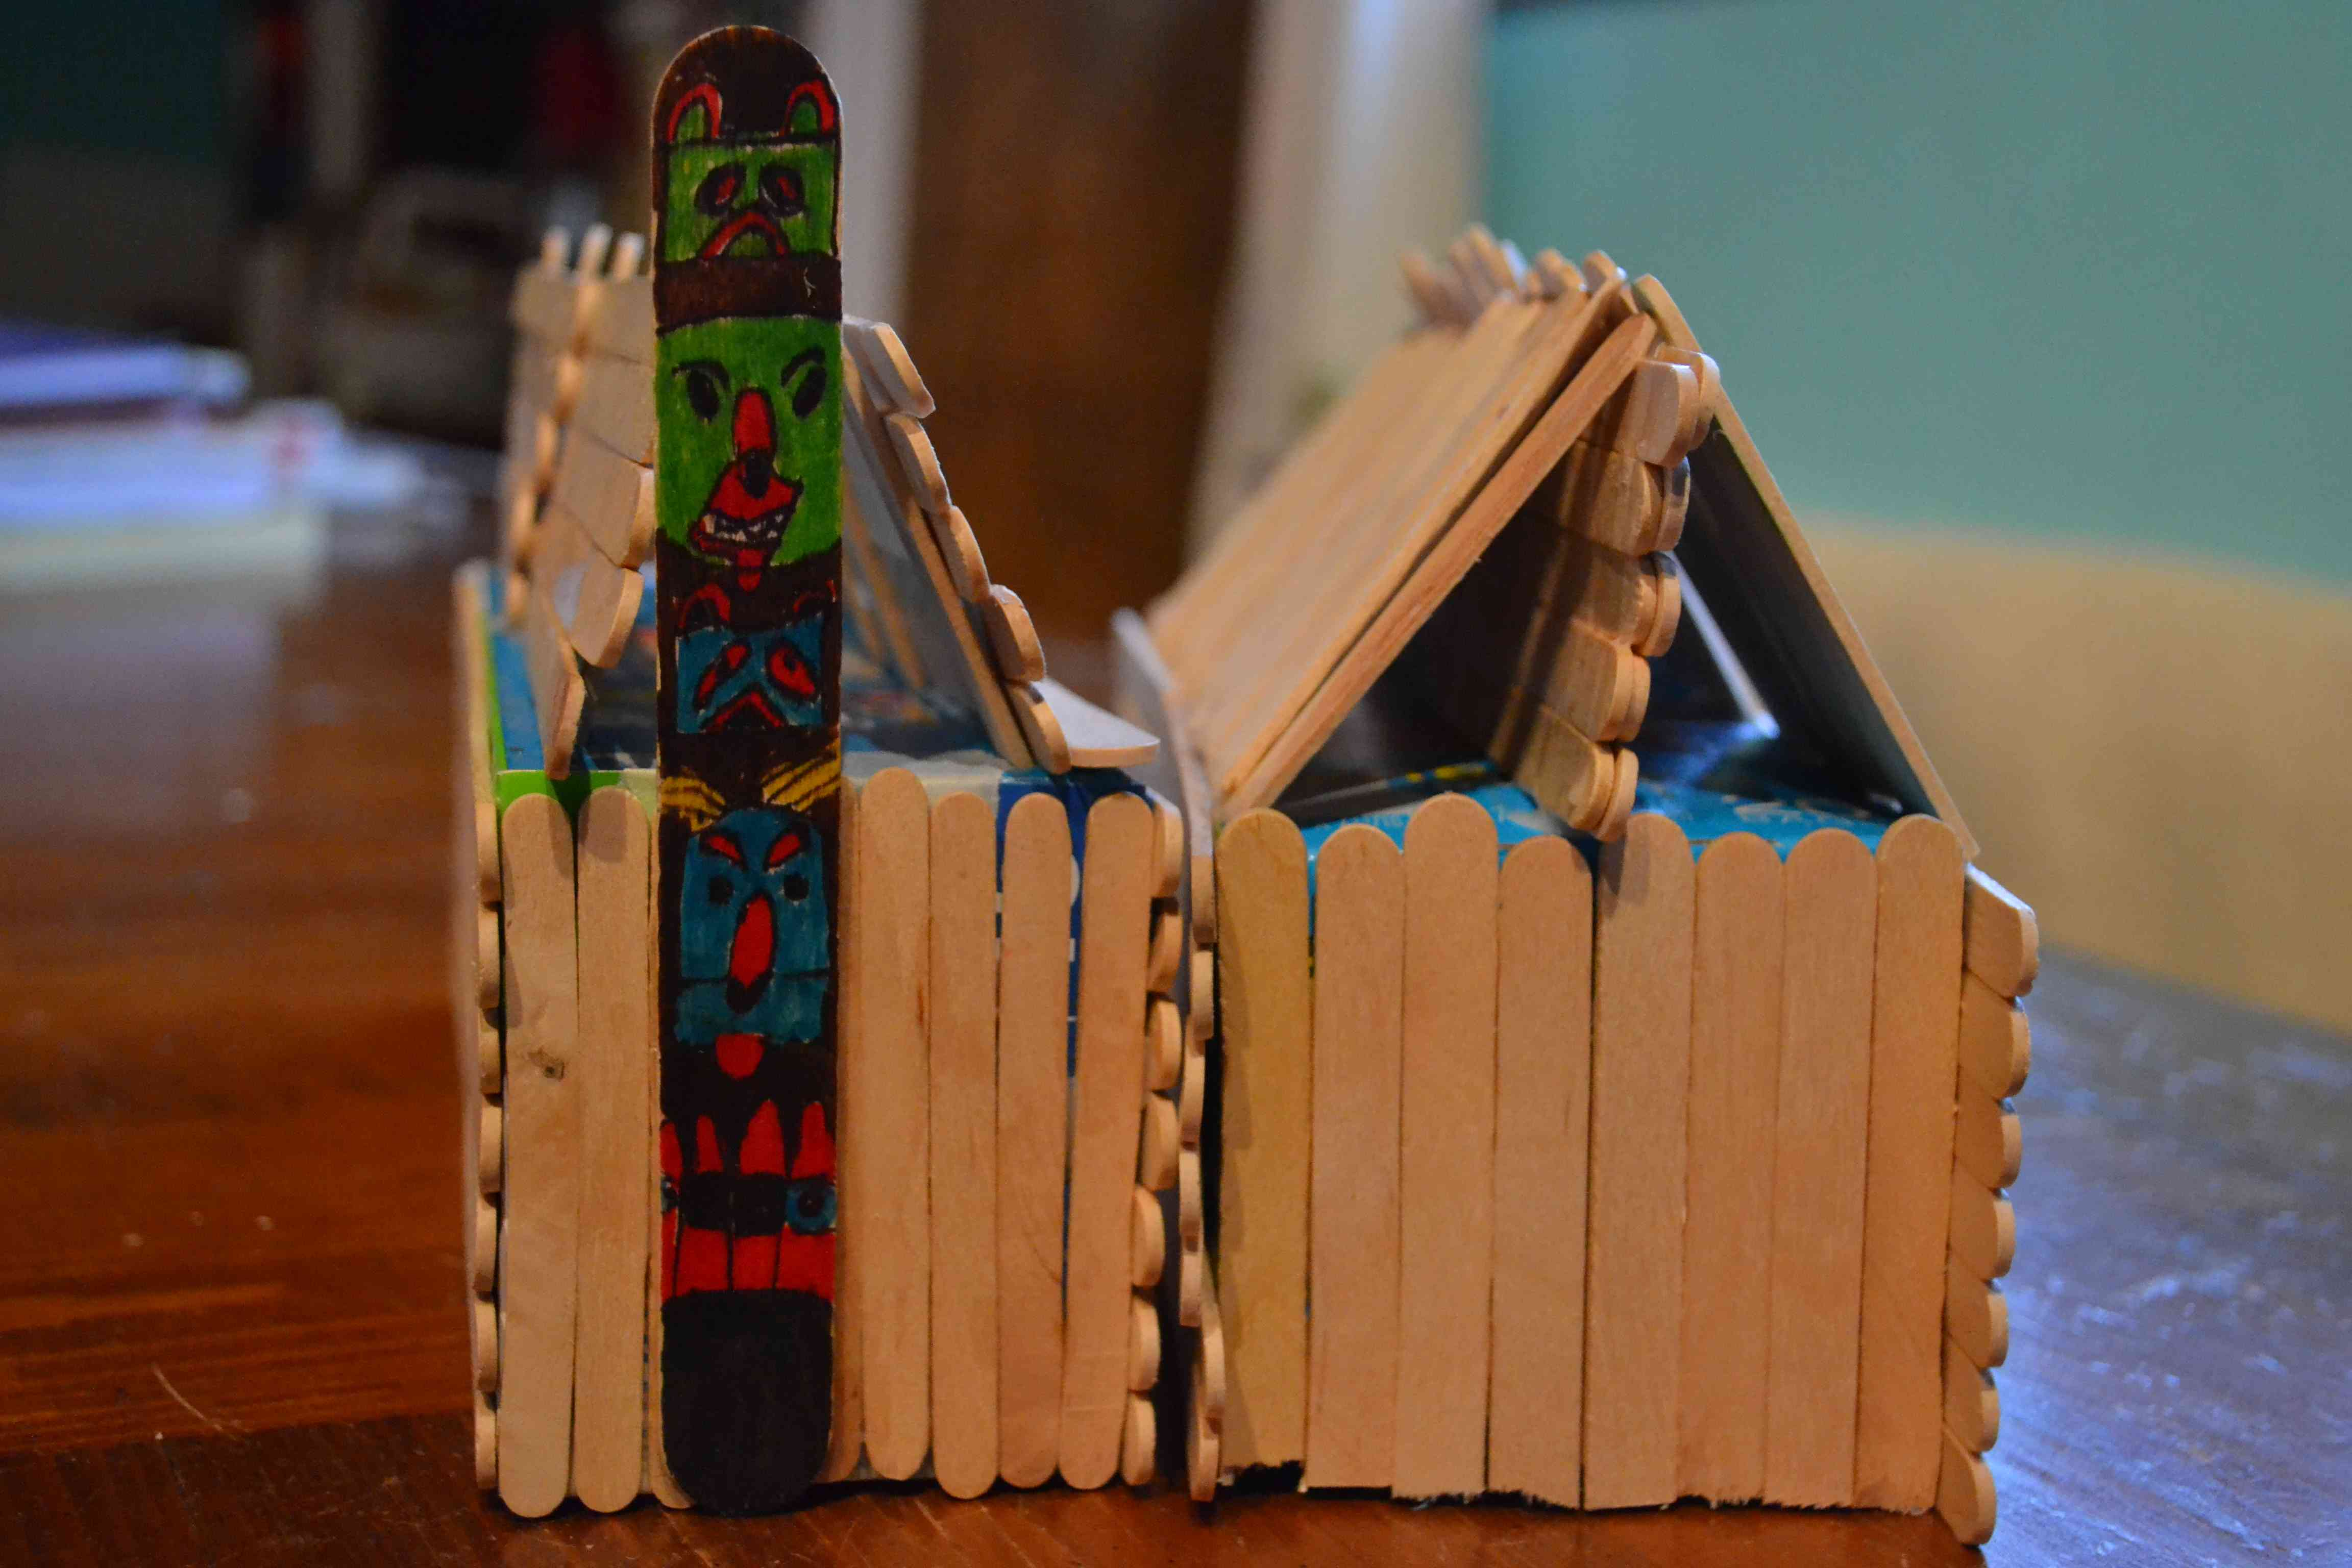 Native Americans Unit: Tlingit + NW Coast :: Part 2 ... on native american wickiup, native americans igloos, native american houses school project, native american round houses, native american yurok history, native american wooden houses, native american wigwams, native american paper artwork, native american homes, native american teepee, native american sites in nh, native american bolo ties for men, native american indian shelters, native american indian tribe diorama, native american yurt, native american adobe houses, native american grass houses, native american wattle and daub, native american hogan, native american lodge,